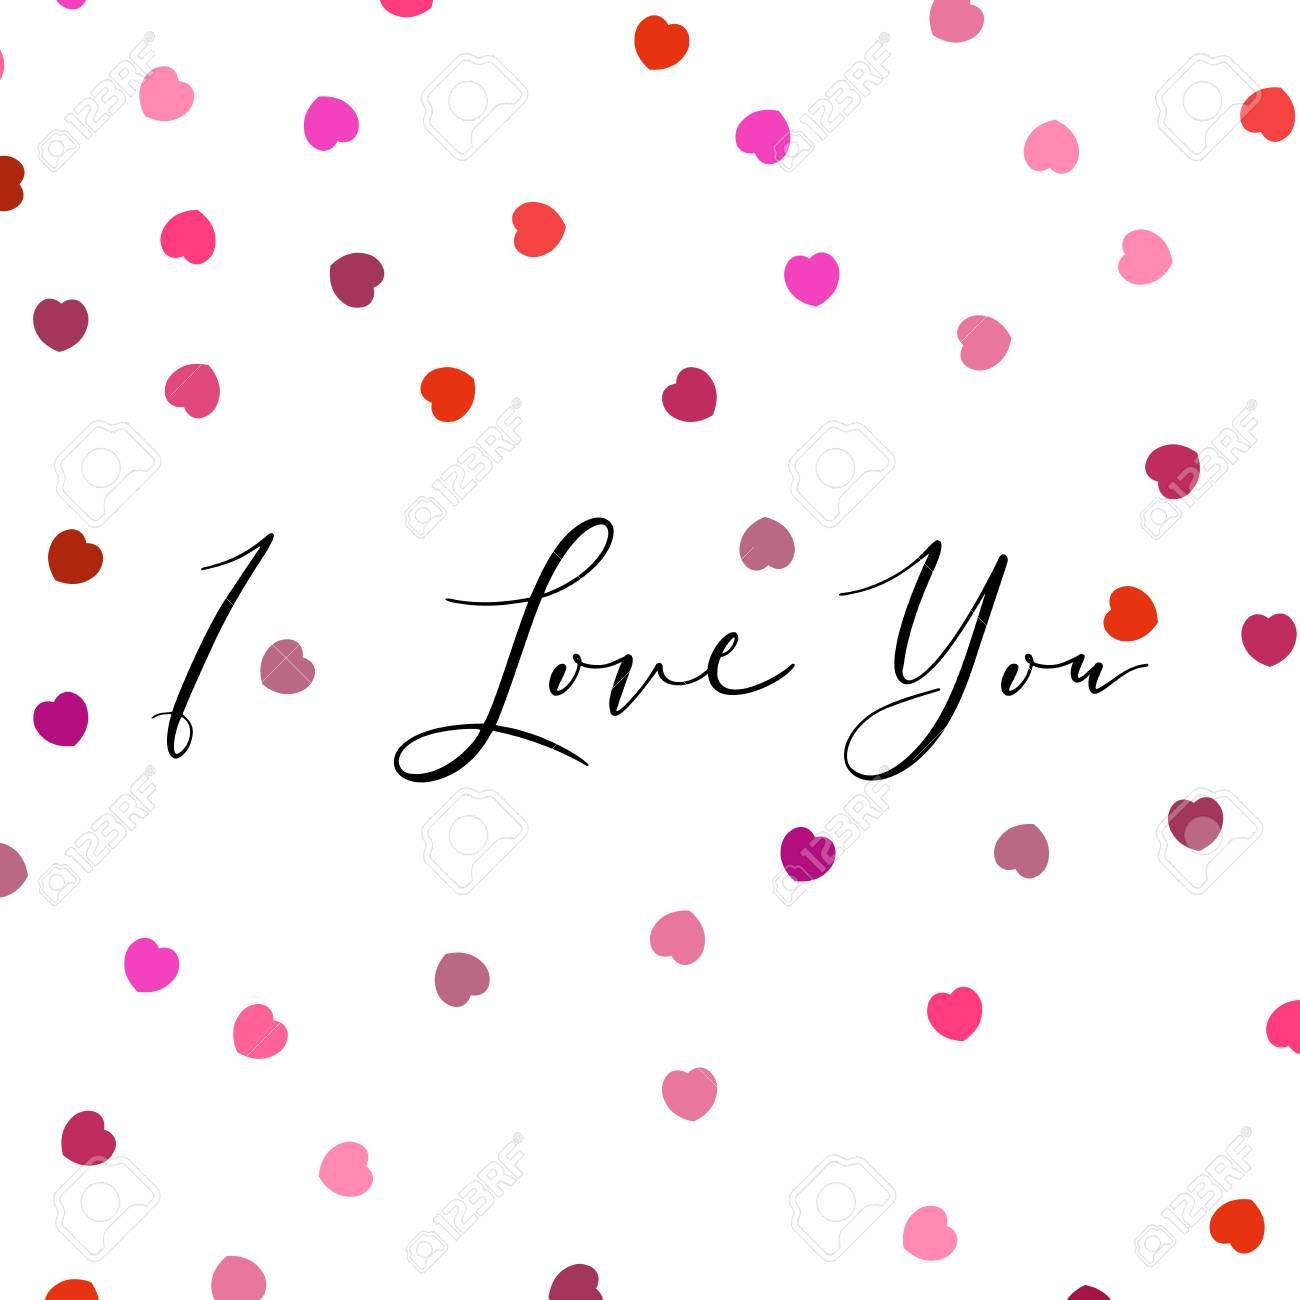 I Love You lettering with random, chaotic, scattered hearts on white background. Illustration , #sponsored, #random, #chaotic, #Love, #lettering, #scattered